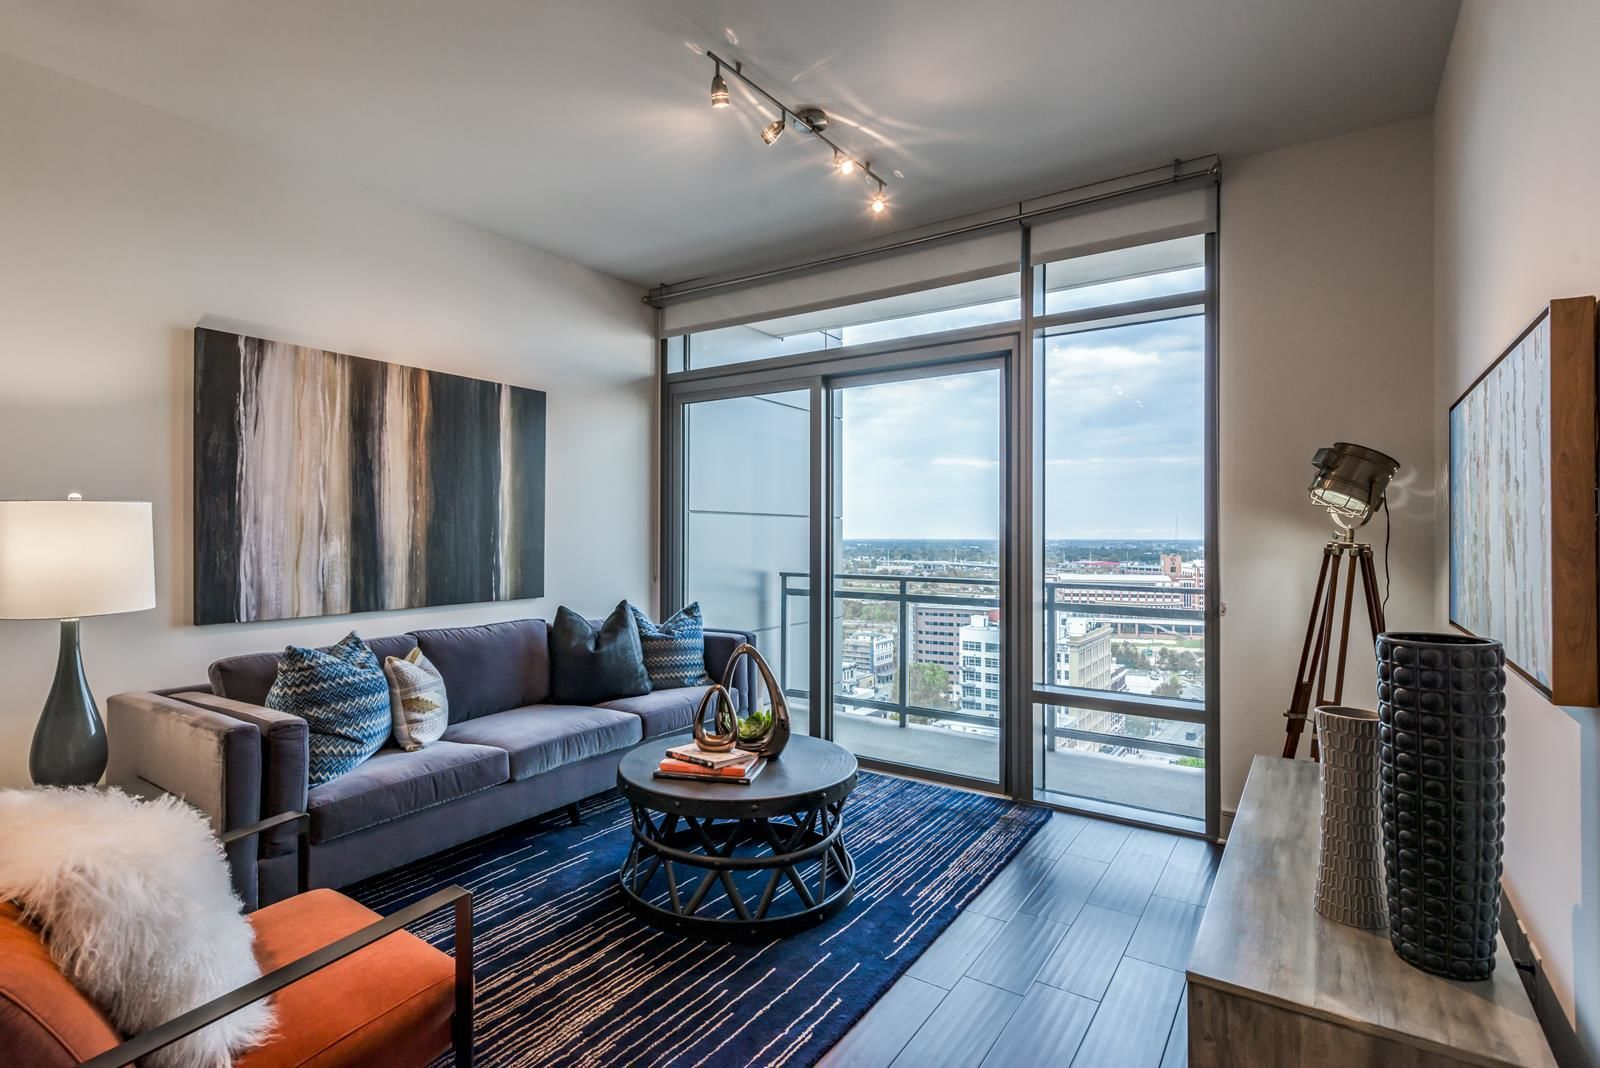 100 Best 2 Bedroom Apartments In Houston, TX (with pics)! - p. 3 Zos Valley Home Designs on river home design, arab home design, vasseur home design, row home design, small home design, eclectic home design, country home design, arch home design, western home design,